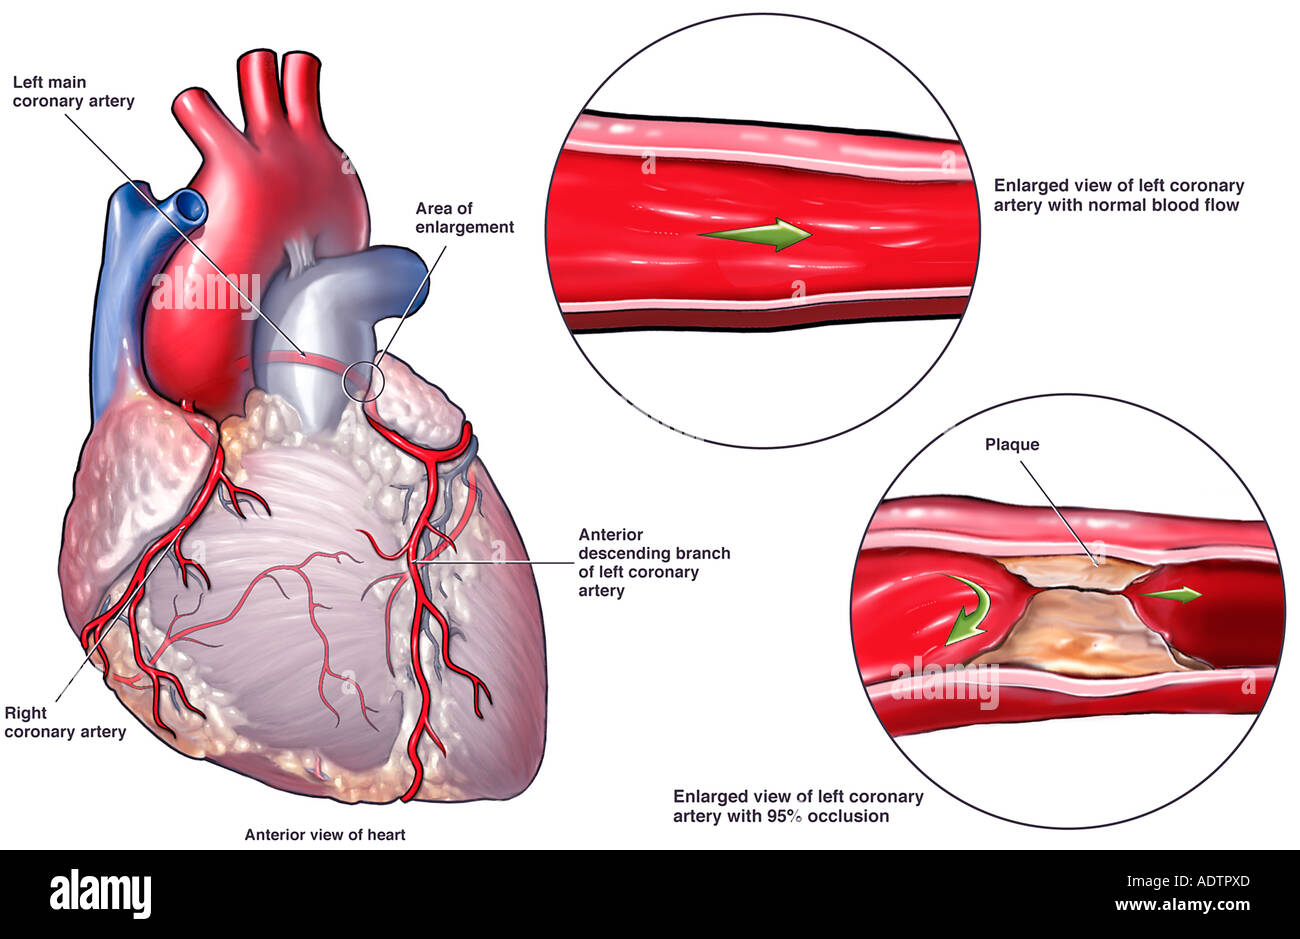 Coronary artery disease leading to fatal heart attack stock photo coronary artery disease leading to fatal heart attack ccuart Images